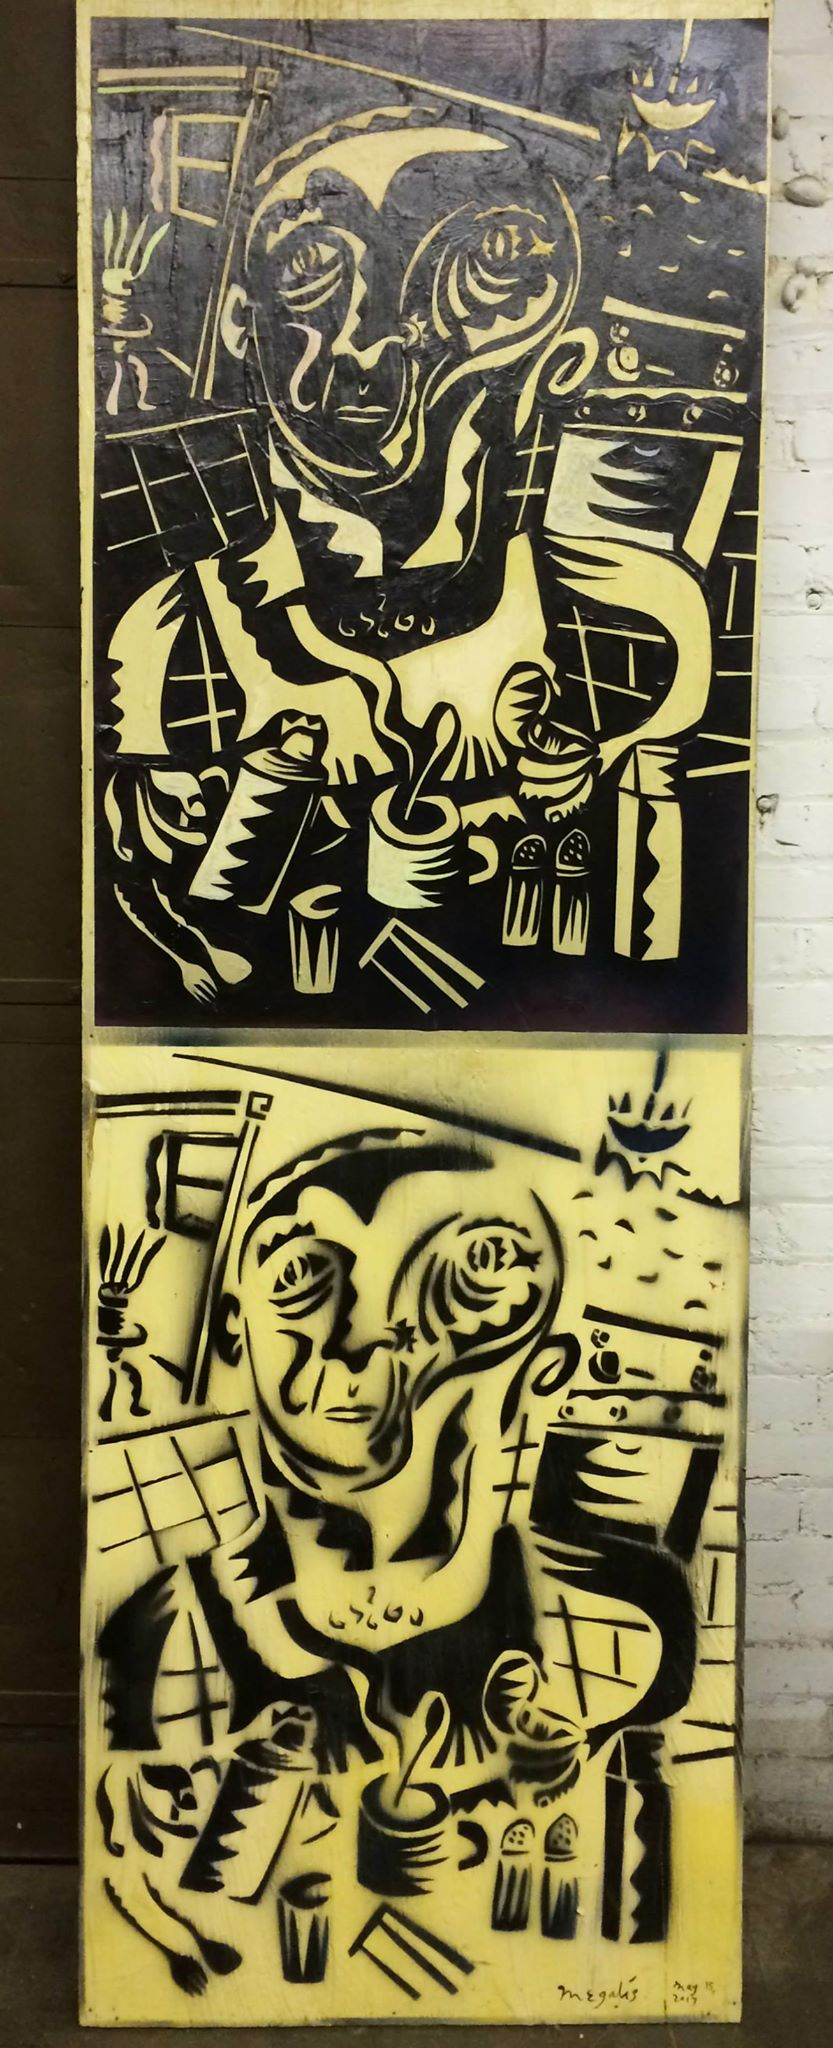 Nikos_Breakfast_paper_spraypaint_wood_60x30_.jpg